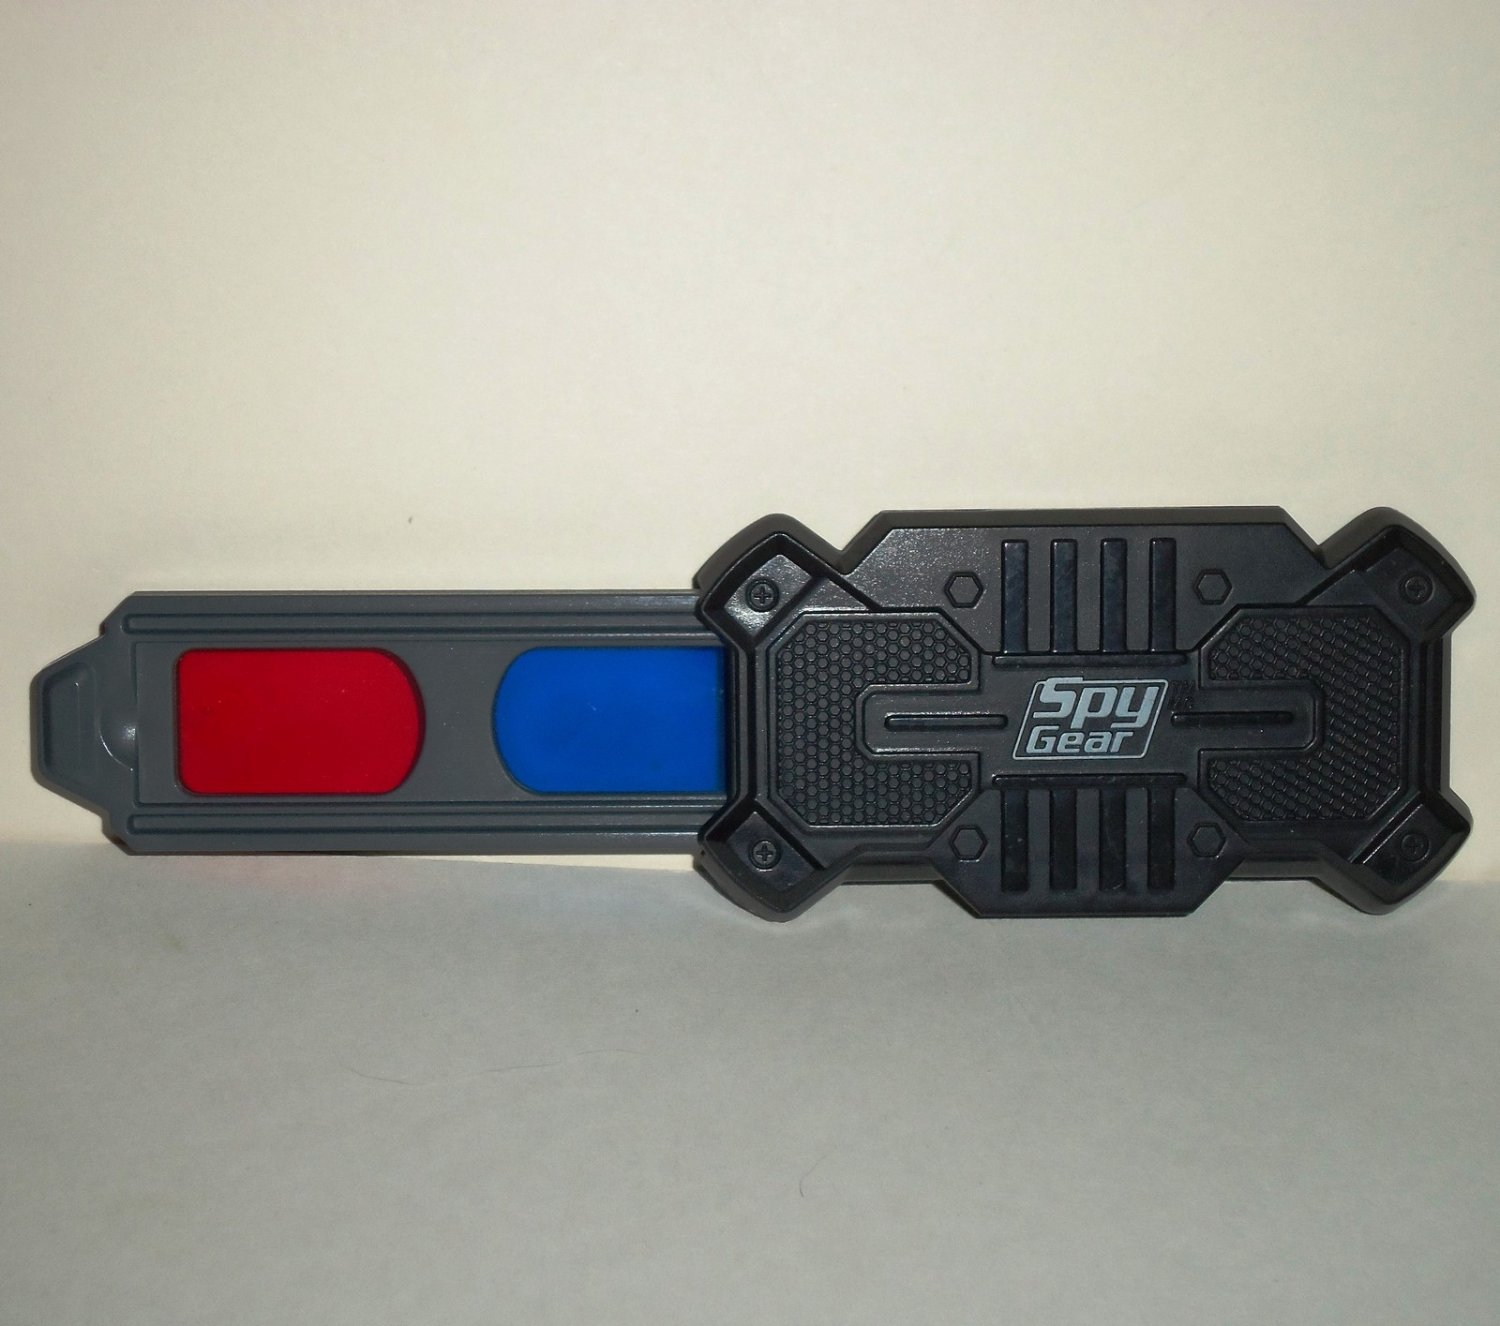 Gears Used In Toys : Mcdonald s spy gear d viewer happy meal toy